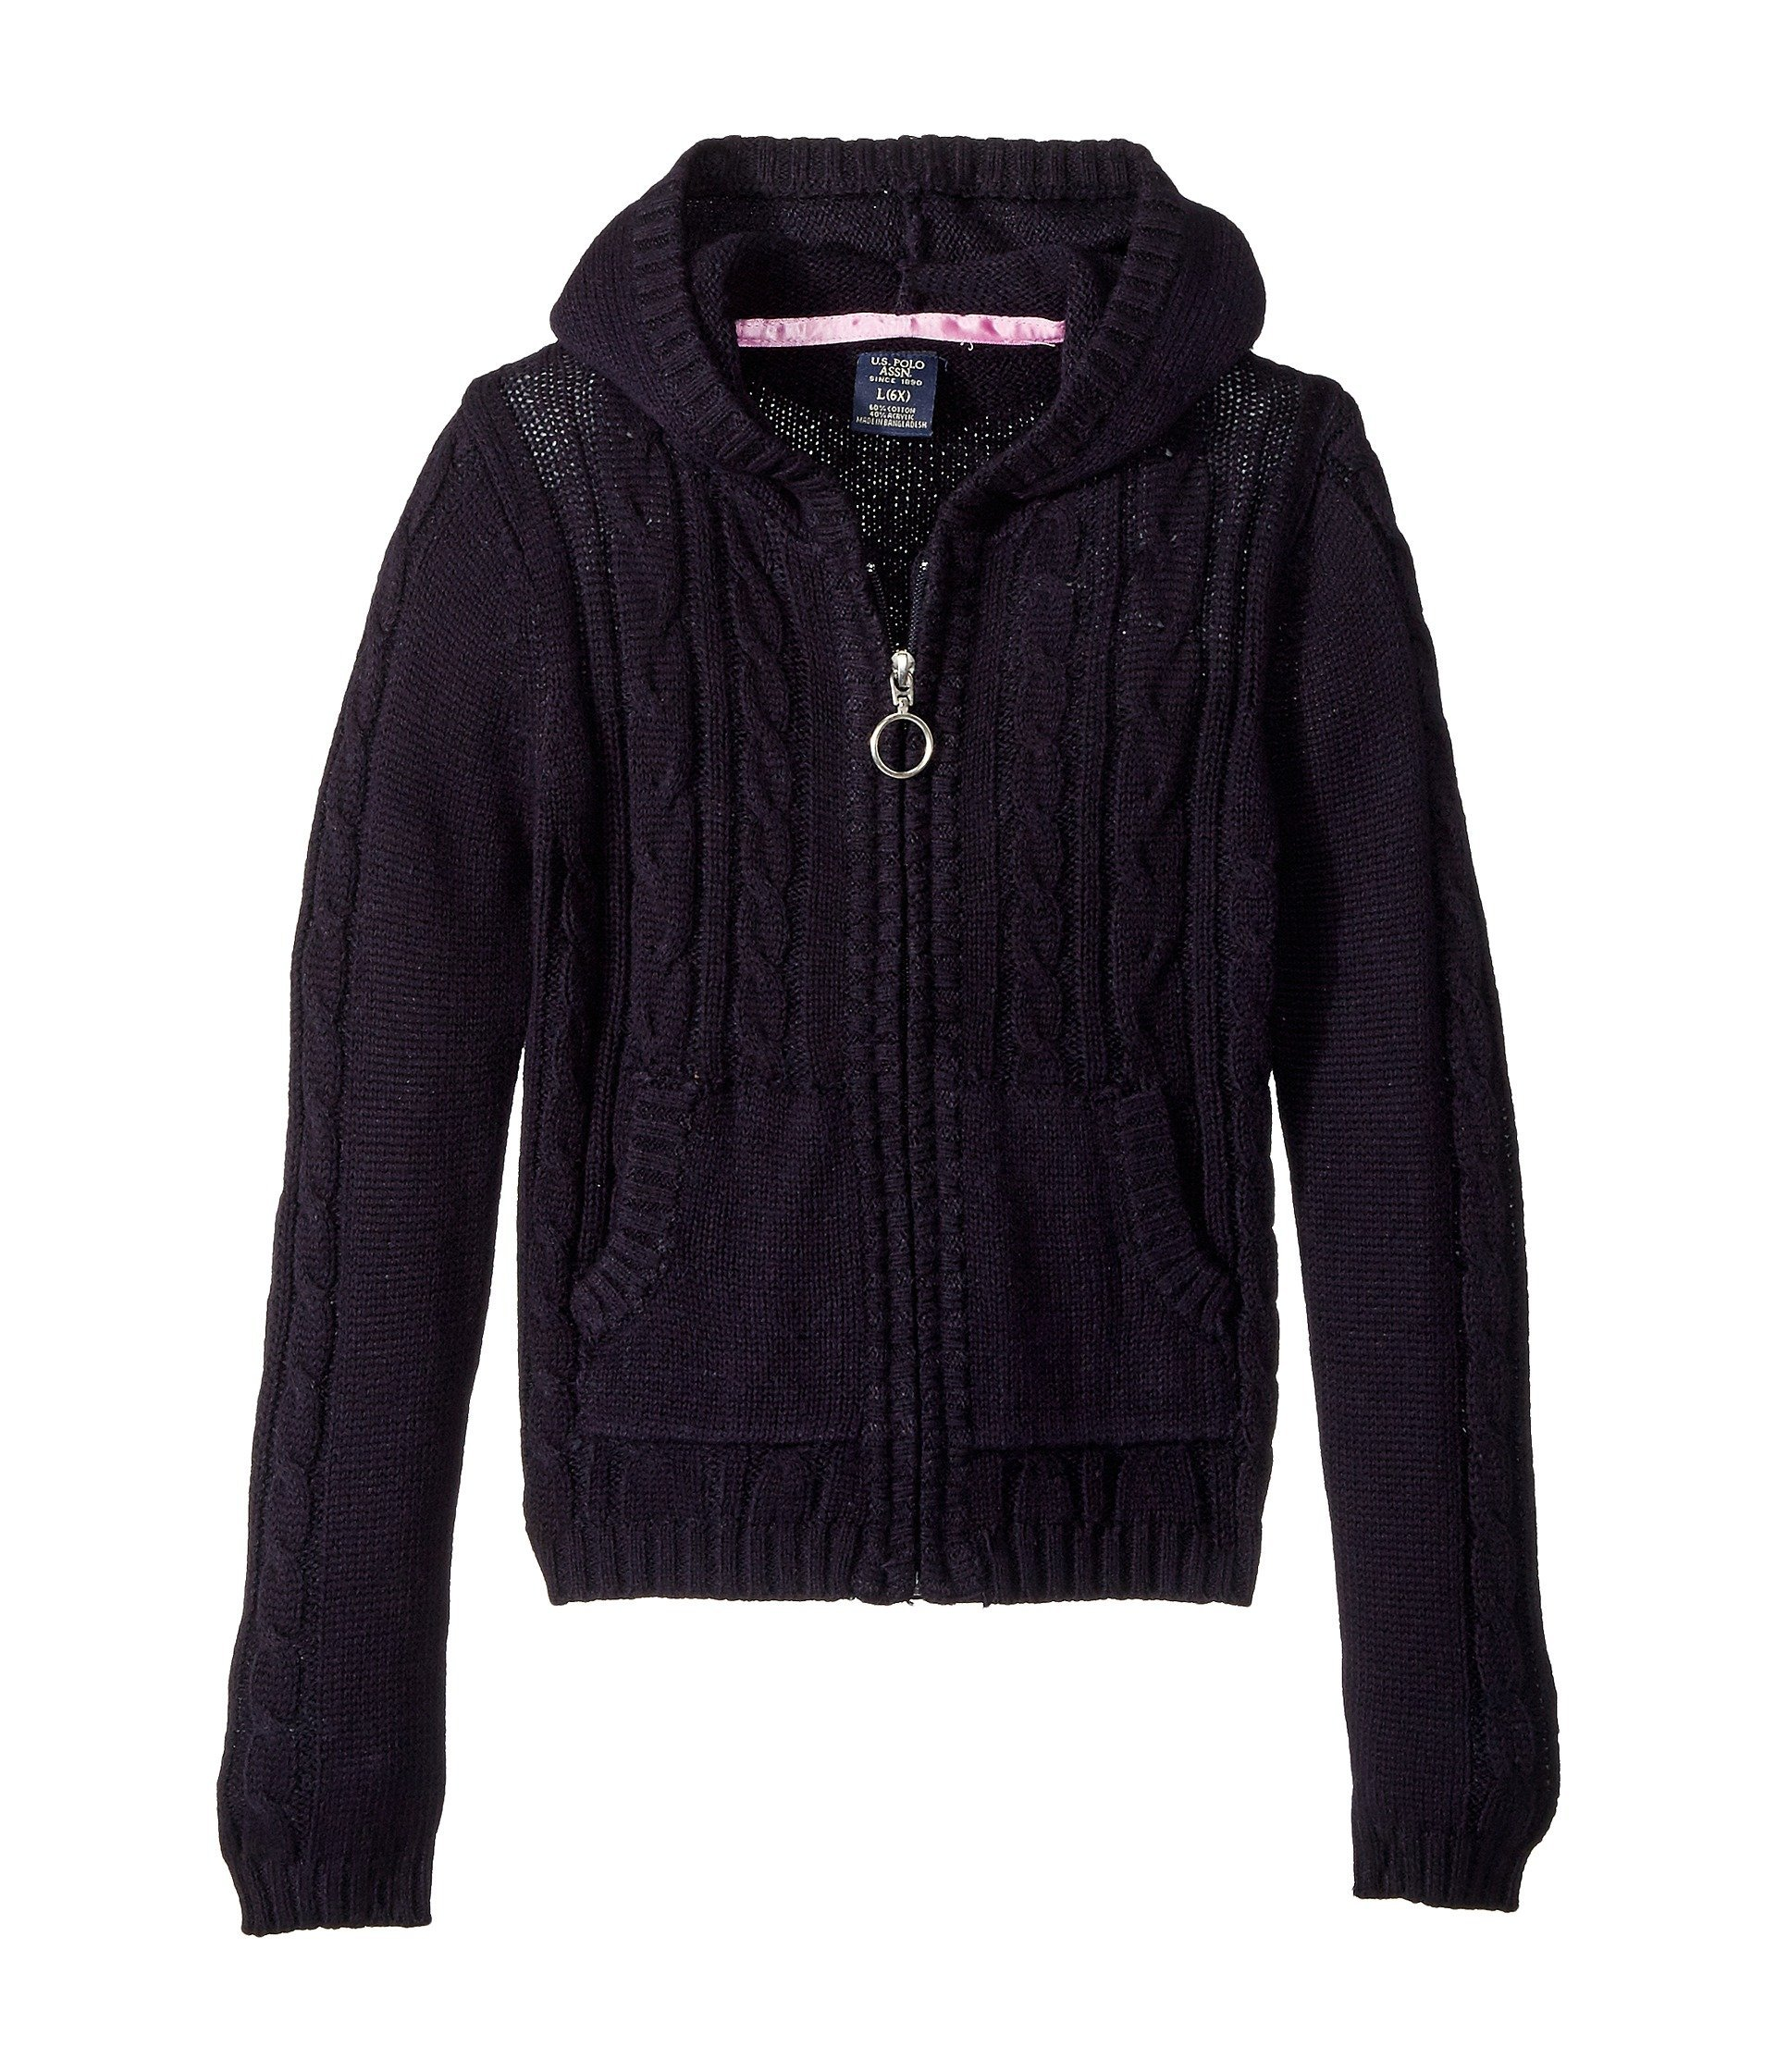 U.S. Polo Assn.. Little Girls' Cable Knit Zip Front Hi-Lo Hooded Sweater, Navy, 4